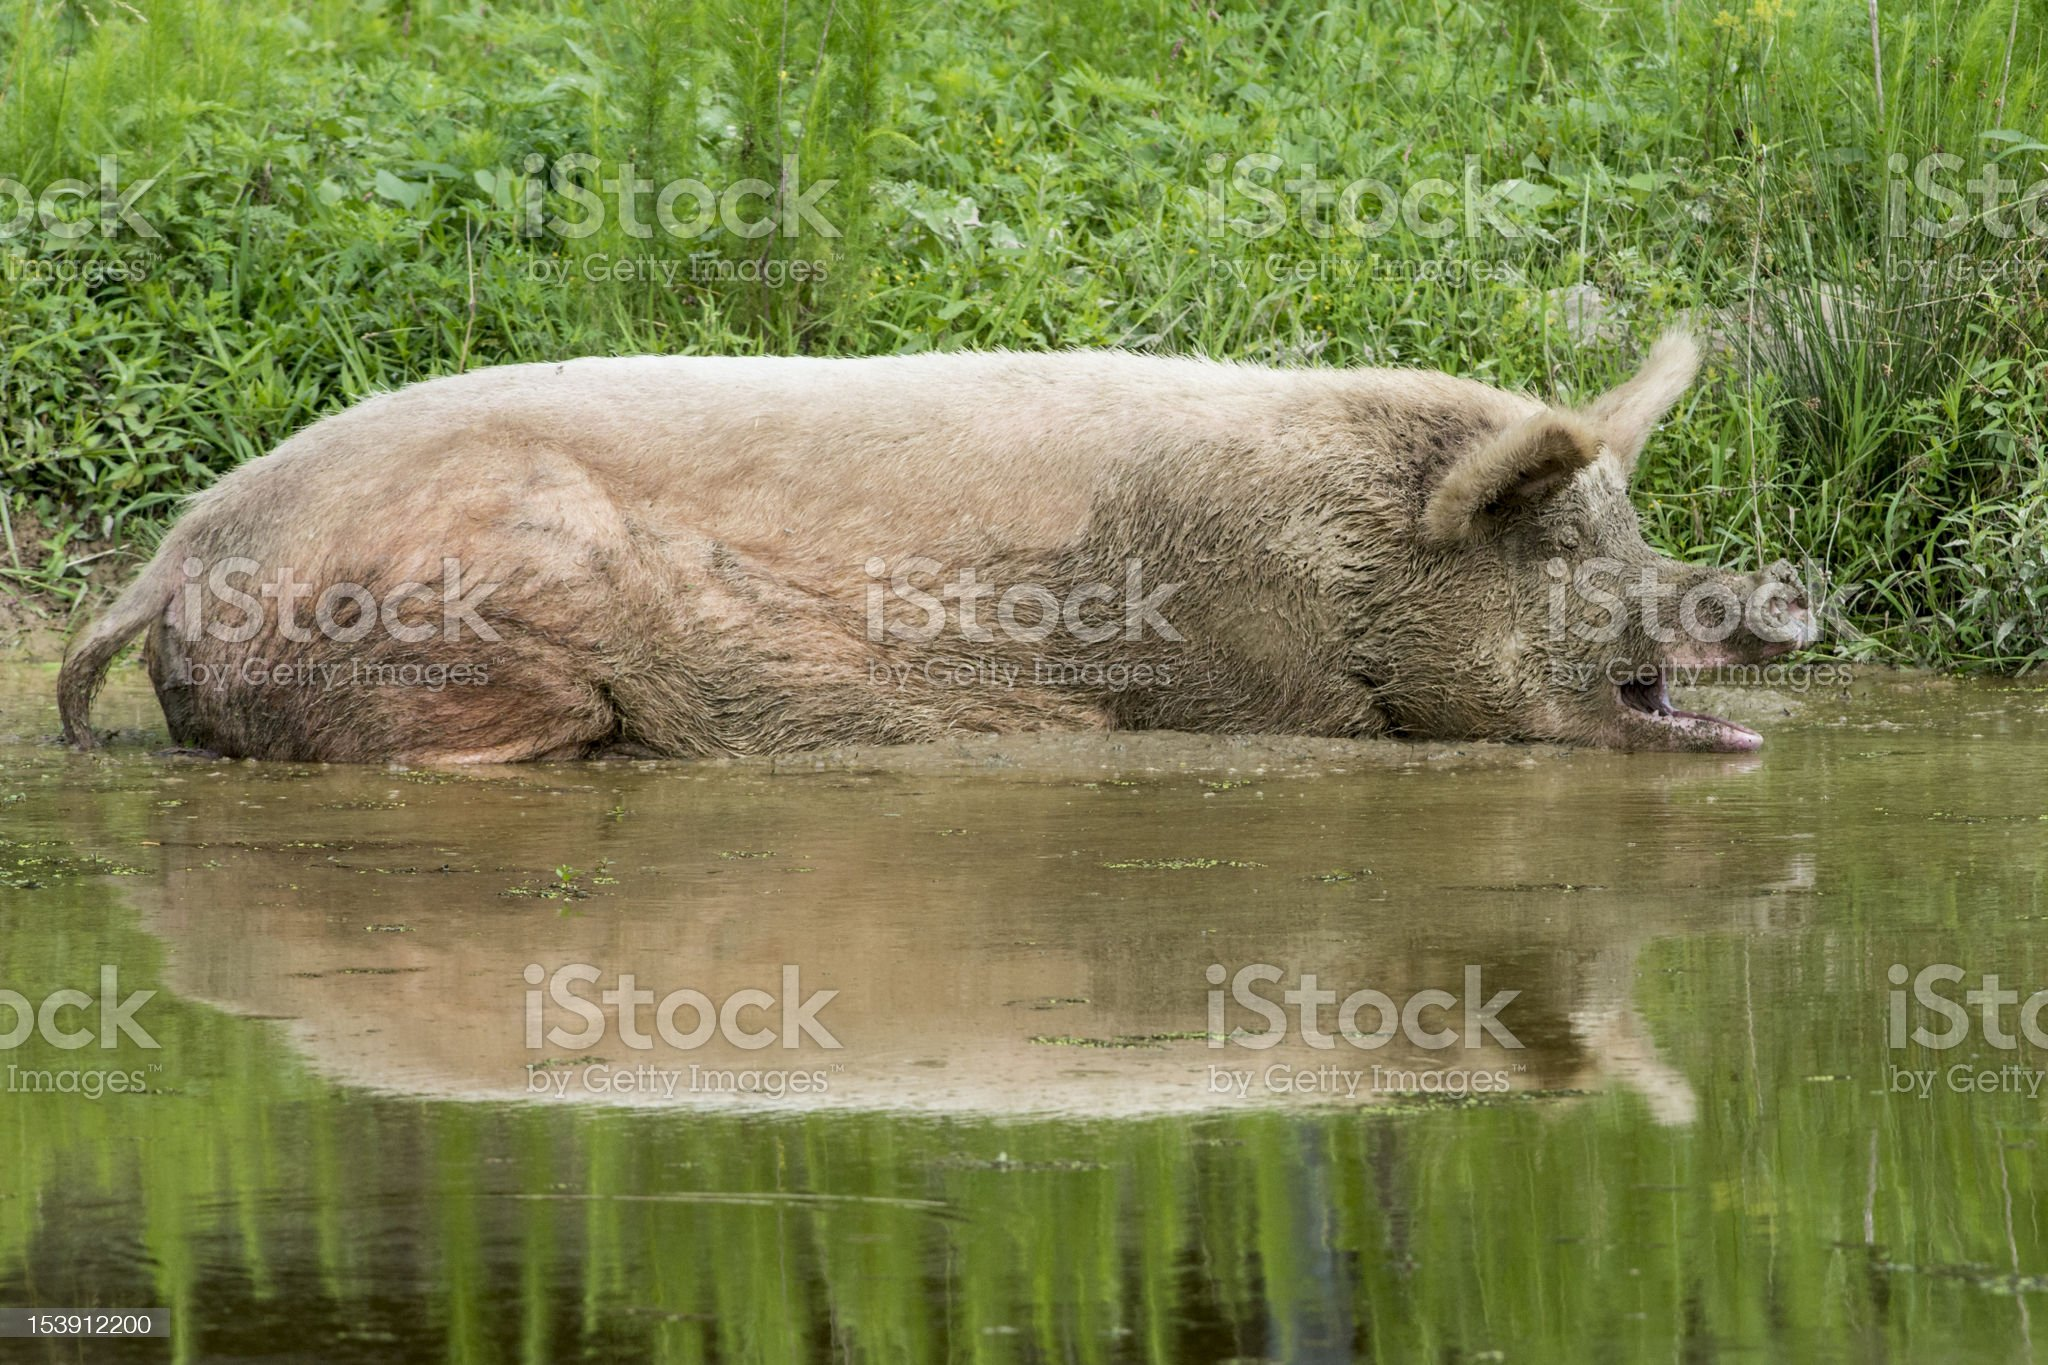 Pig wallowing in muddy water royalty-free stock photo